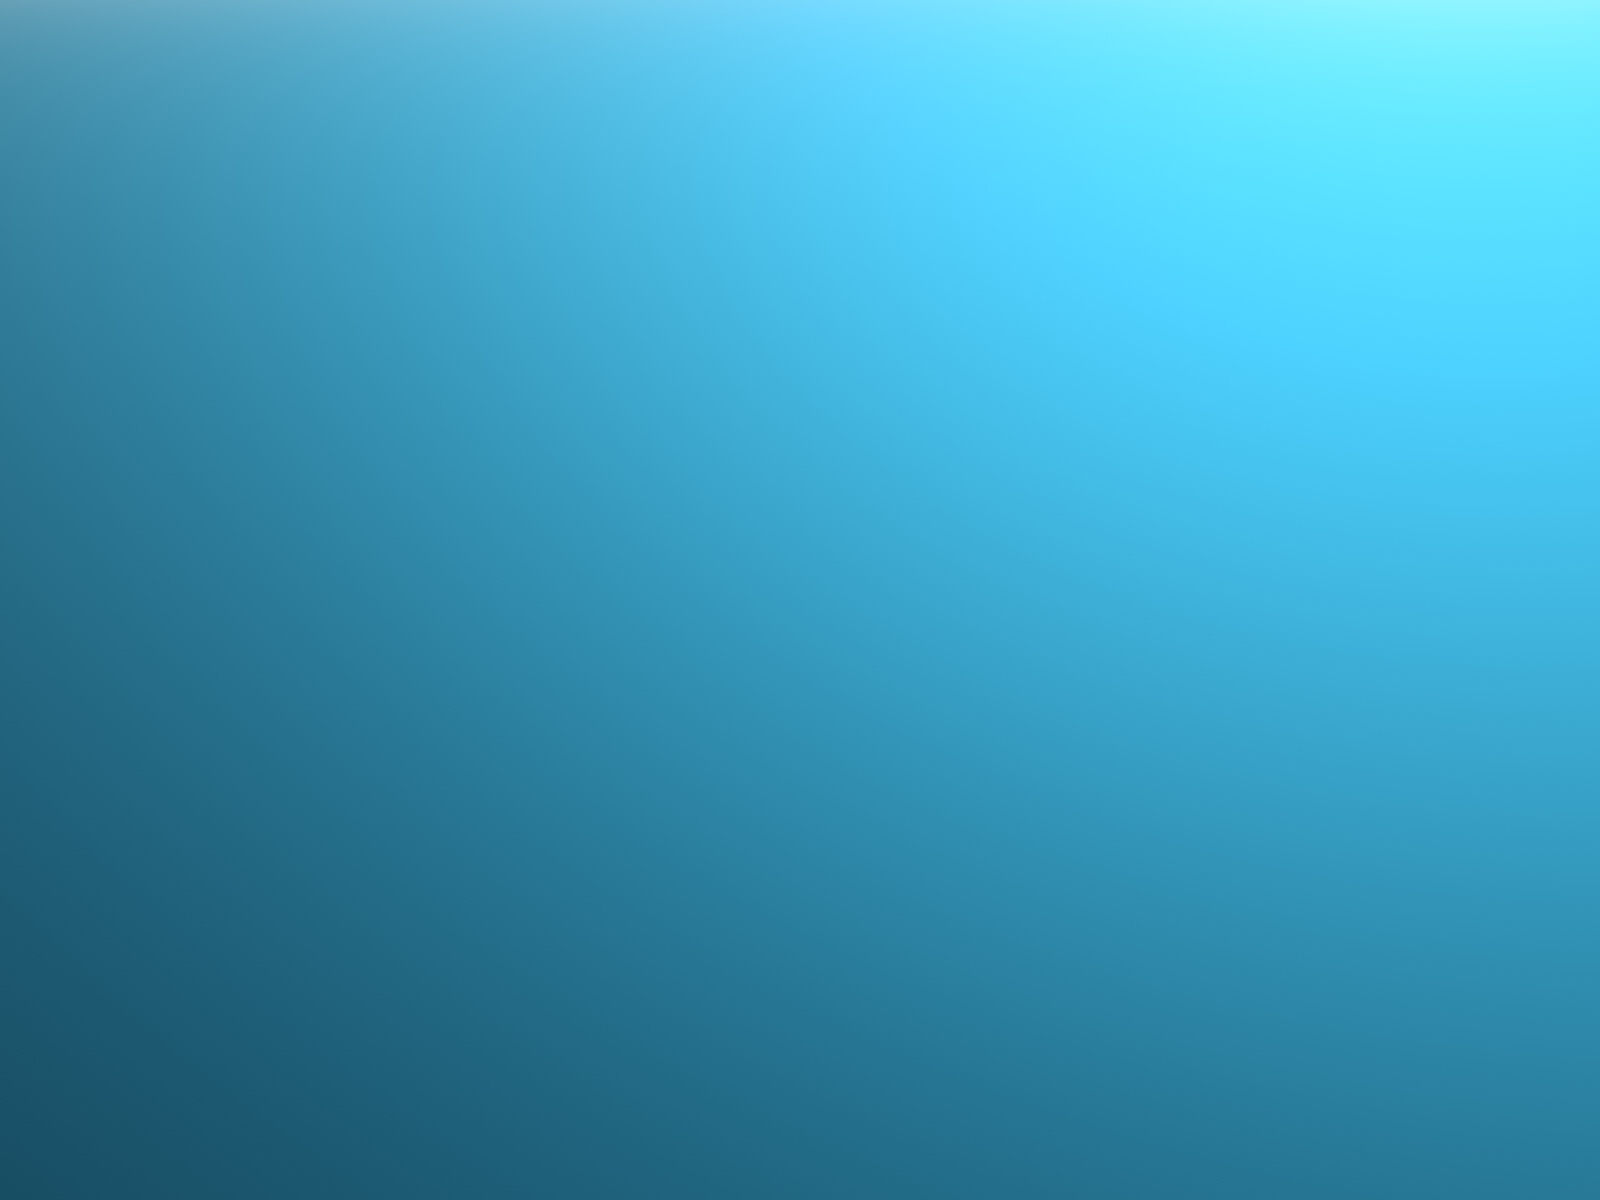 Plain Light Blue Background